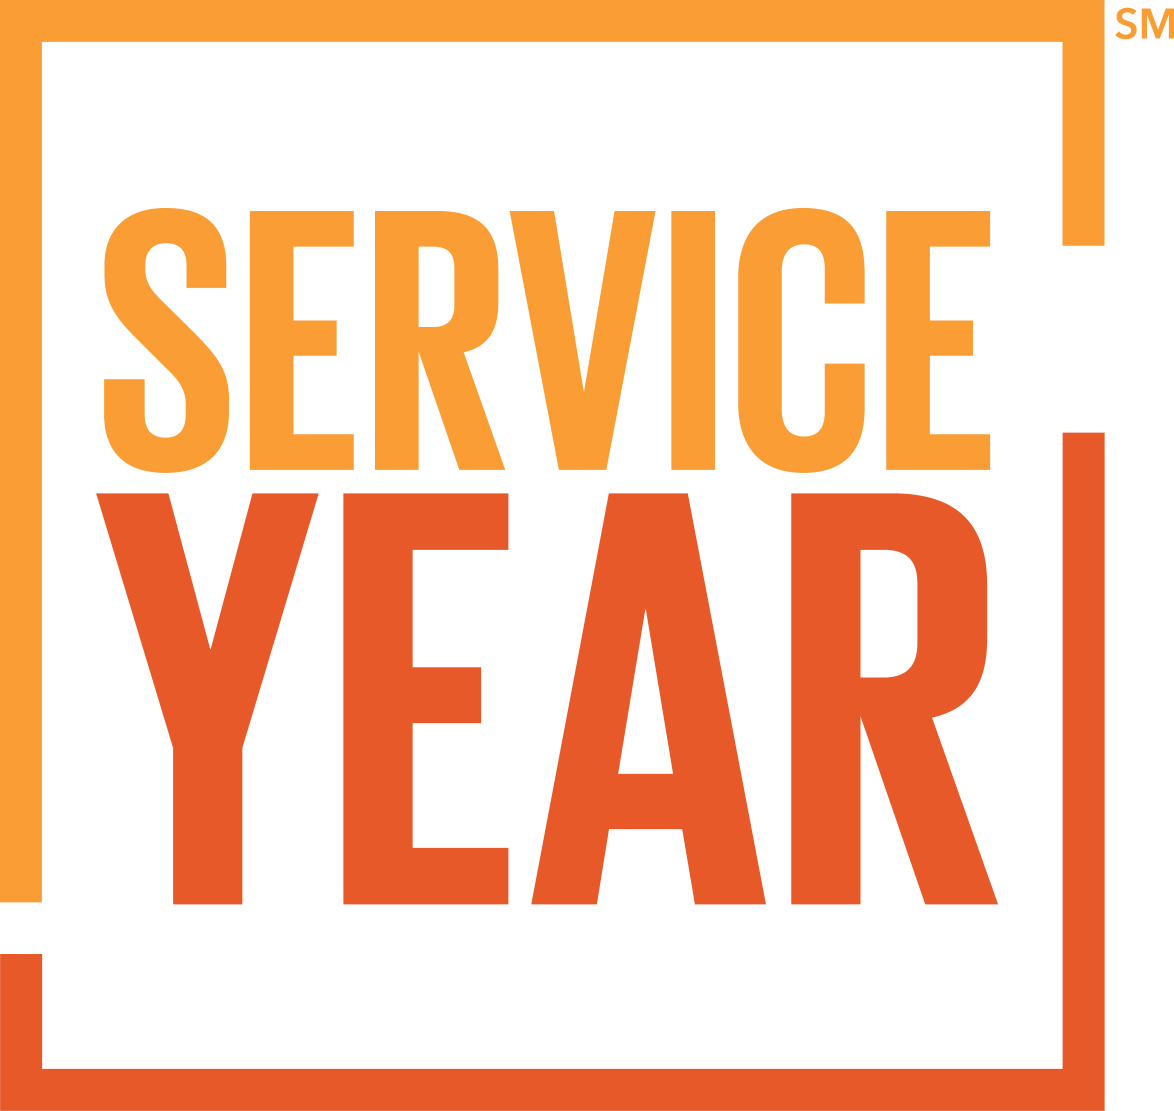 Service-Year.png